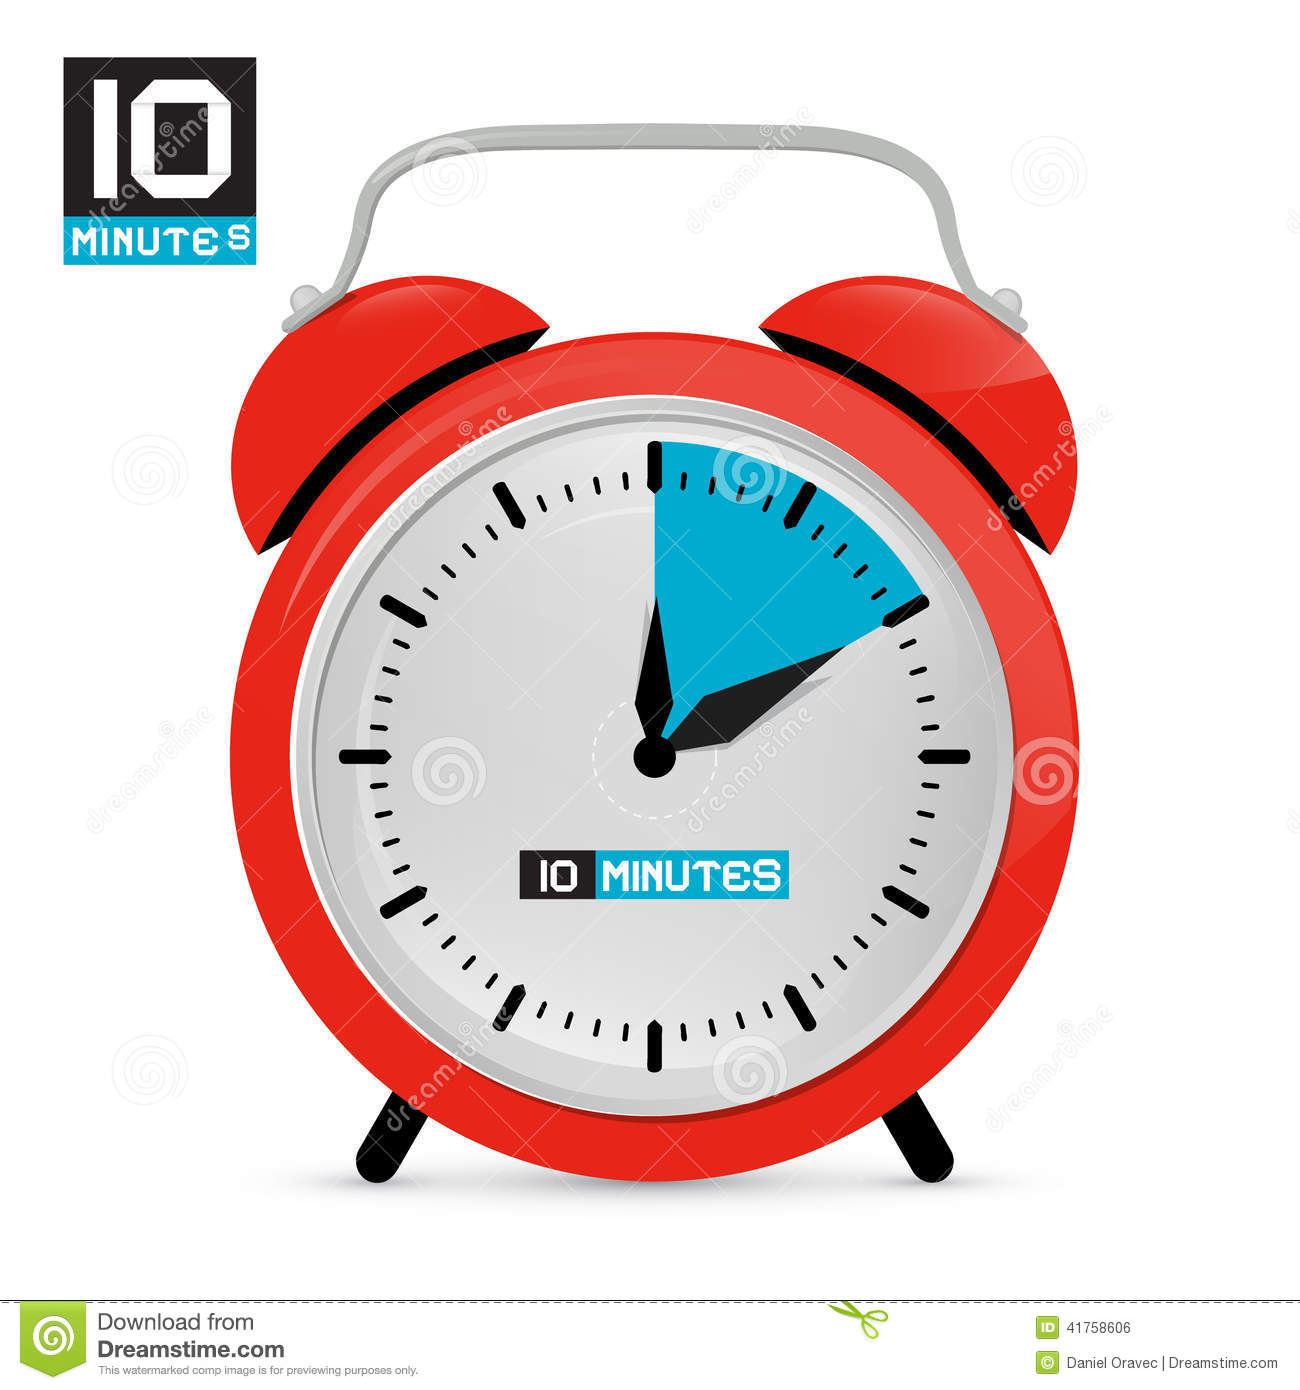 Ten 10 Minutes Red Alarm Clock Stock Vector - Image: 41758606